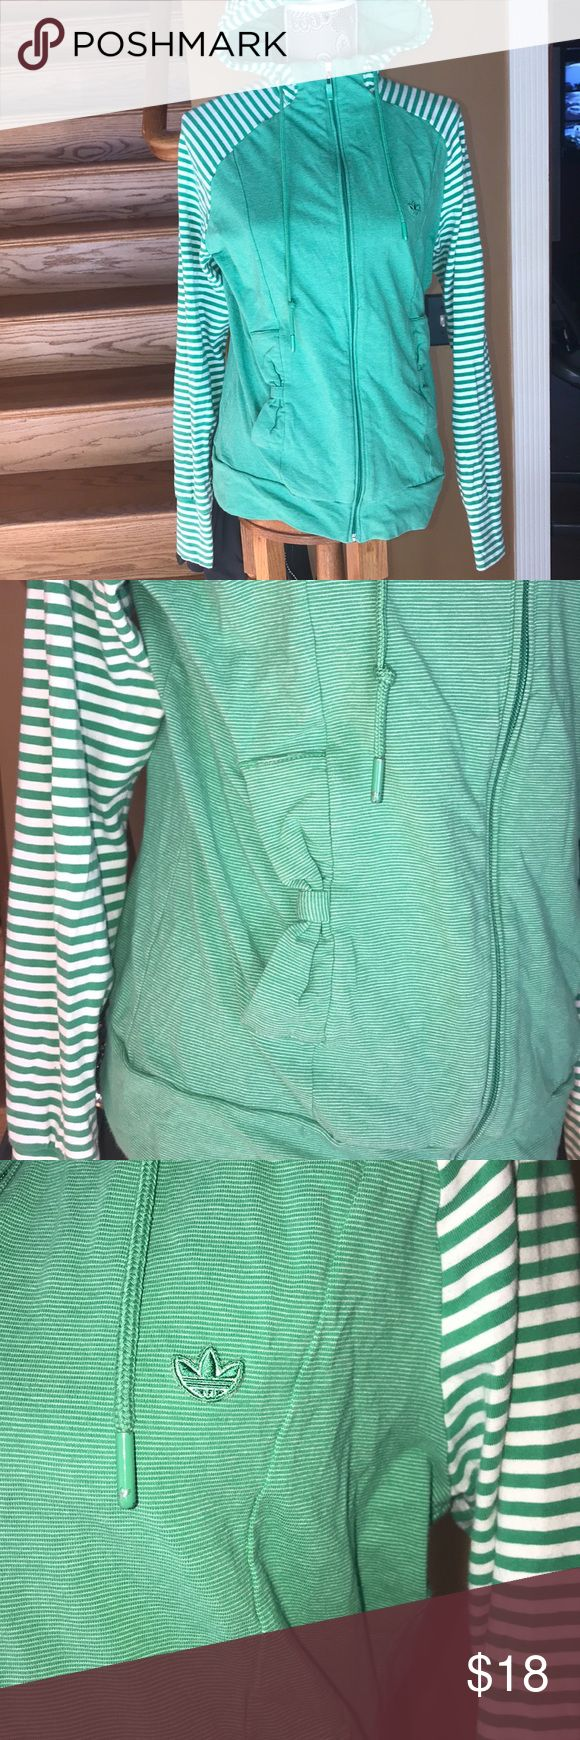 Adidas zip up hoodie Adidas zip up hoodie green and white size xl excellent condition adidas Tops Sweatshirts & Hoodies